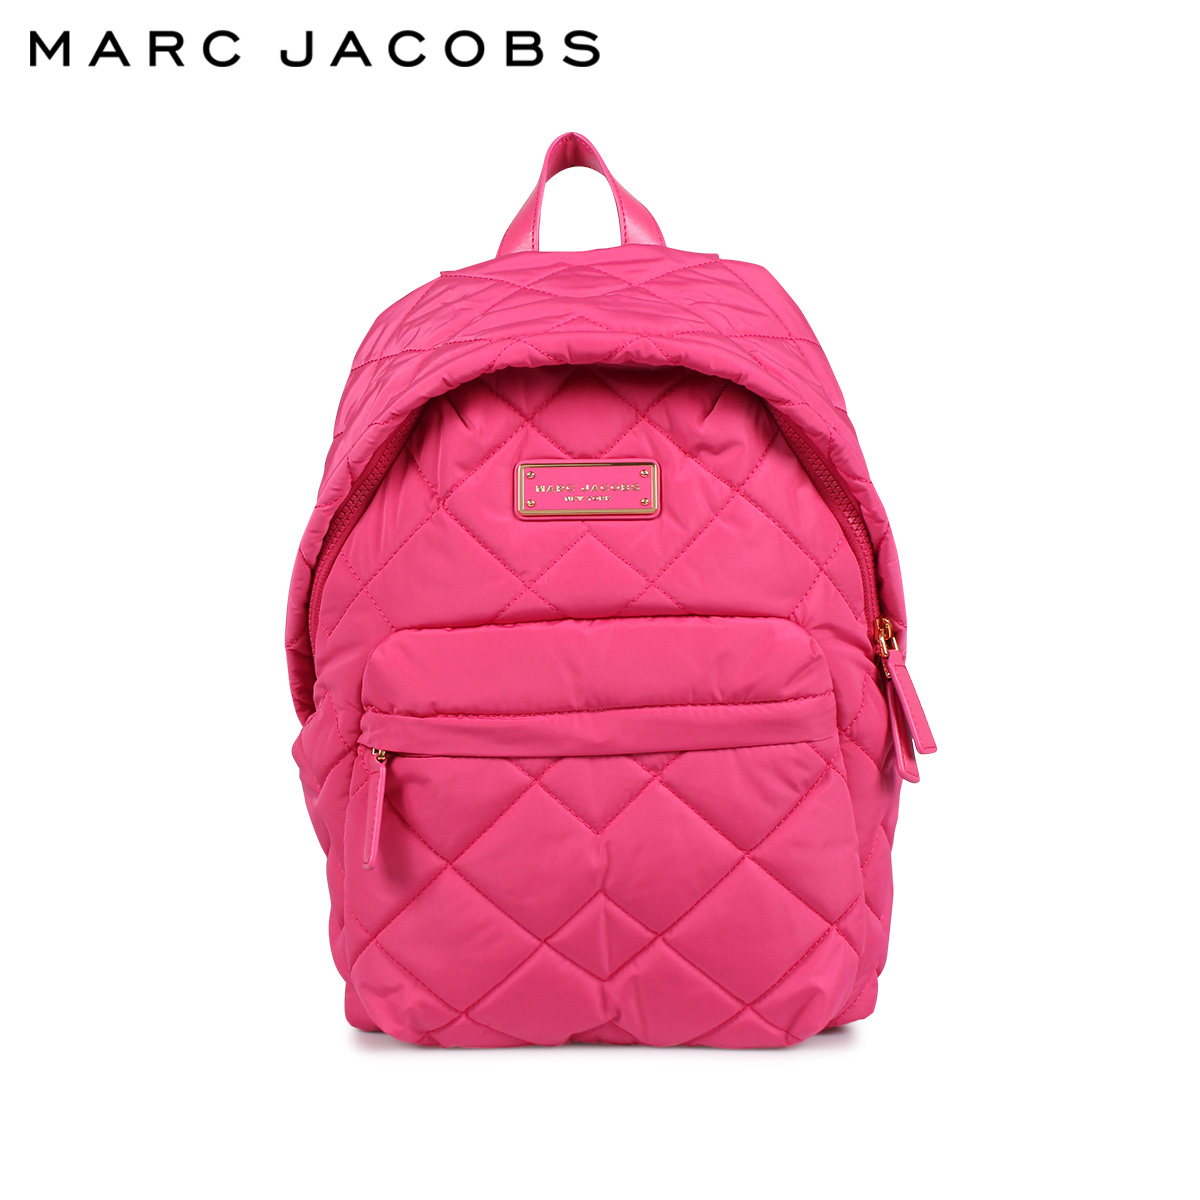 MARC JACOBS QUILTED BACKPACK マークジェイコブス リュック バッグ バックパック レディース ピンク M0011321